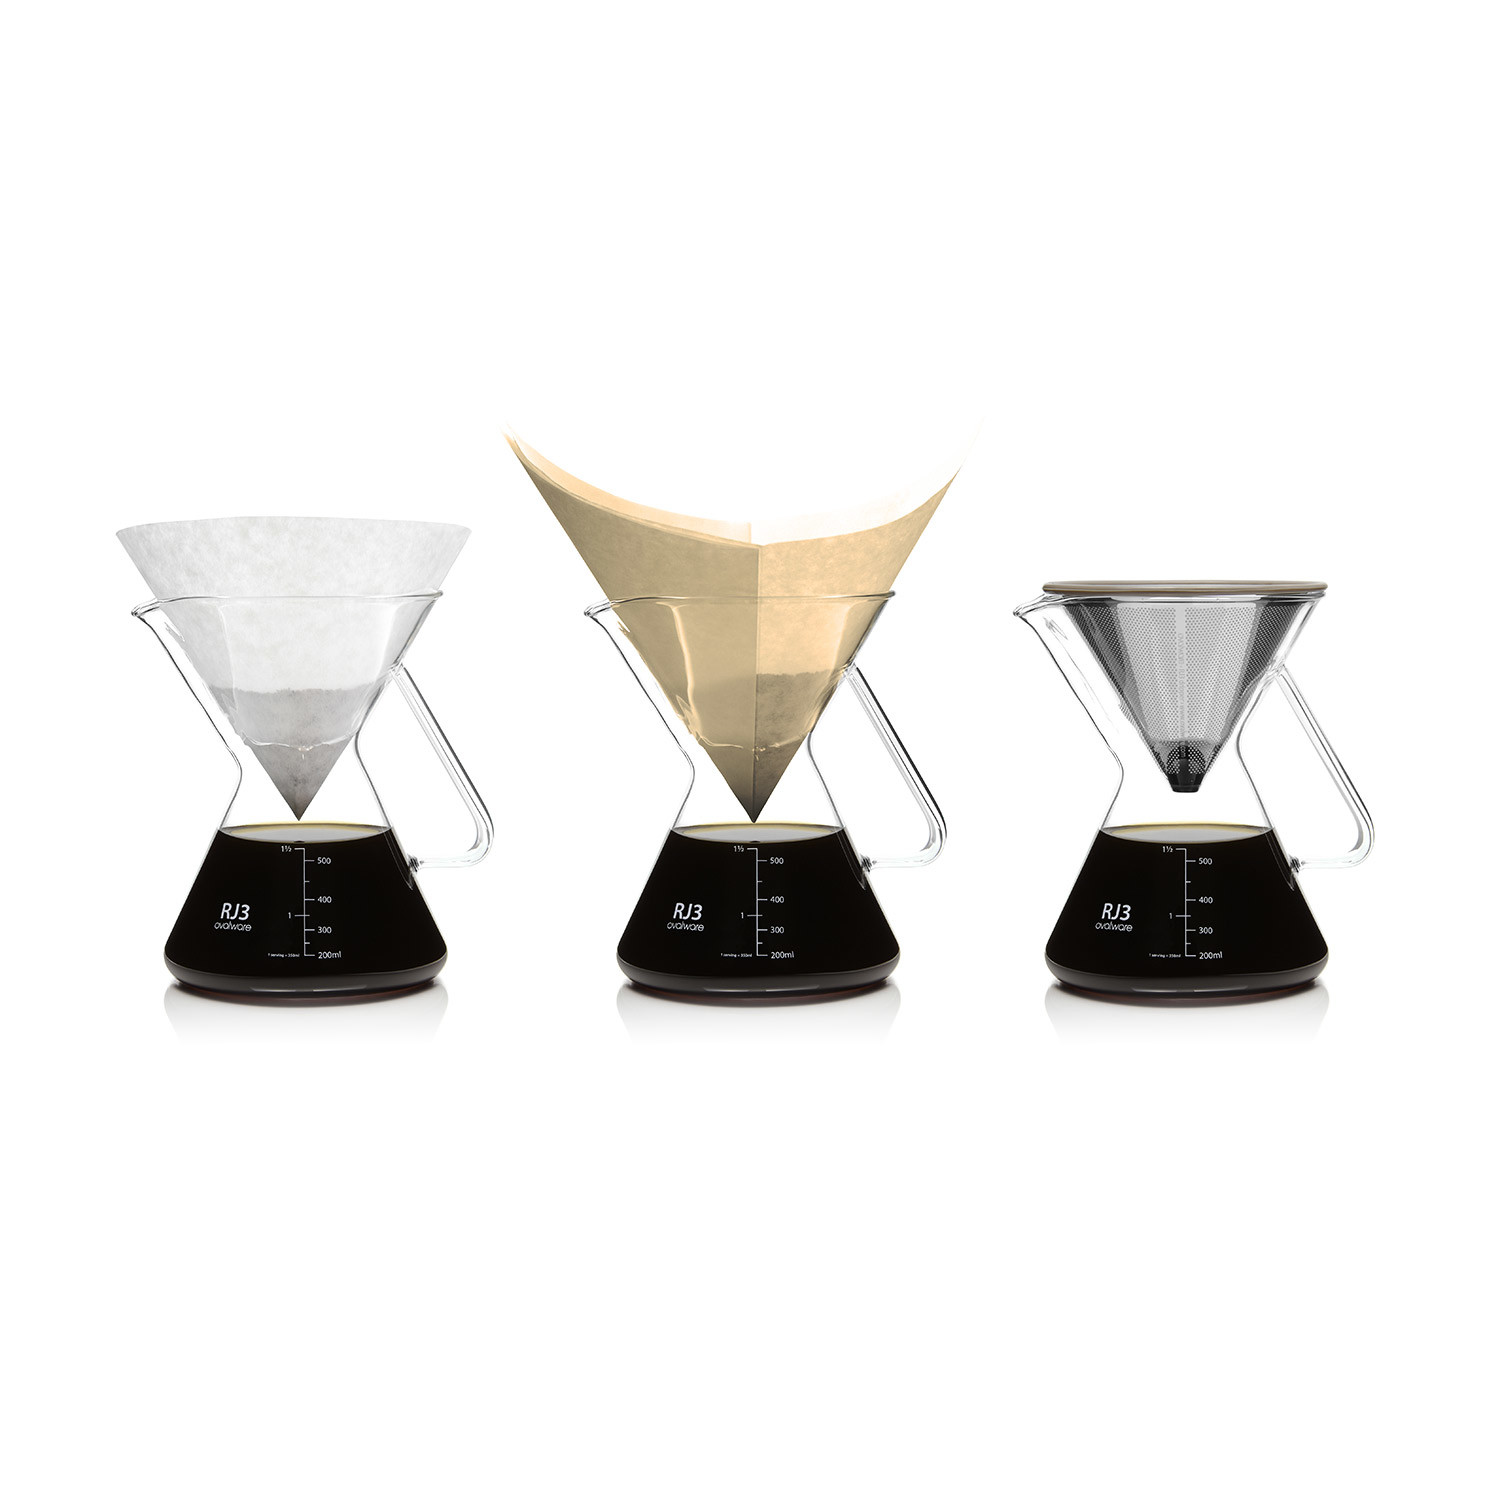 RJ3 Pour Over Coffee Maker + Filter - Ovalware - Touch of Modern